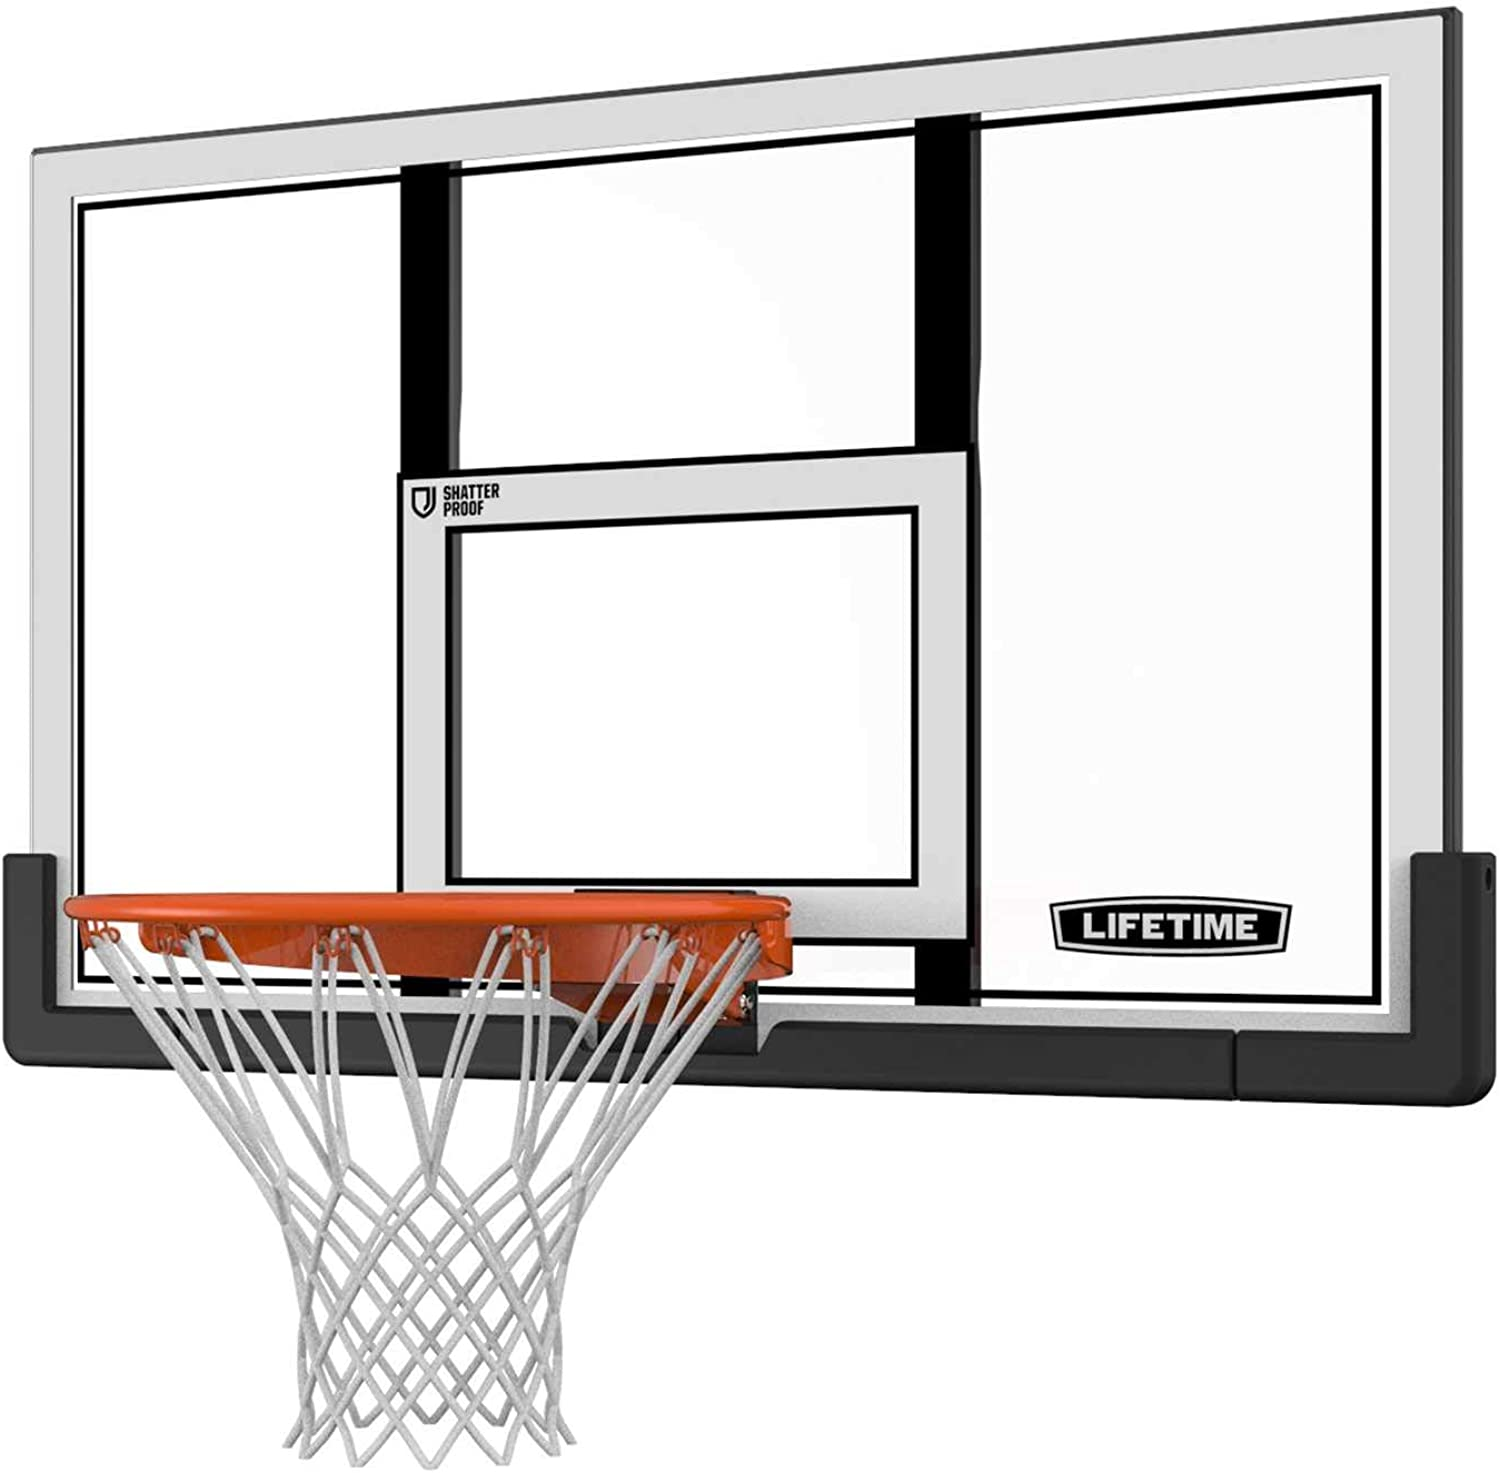 Lifetime 73729 Backboard and Rim Combo Kit